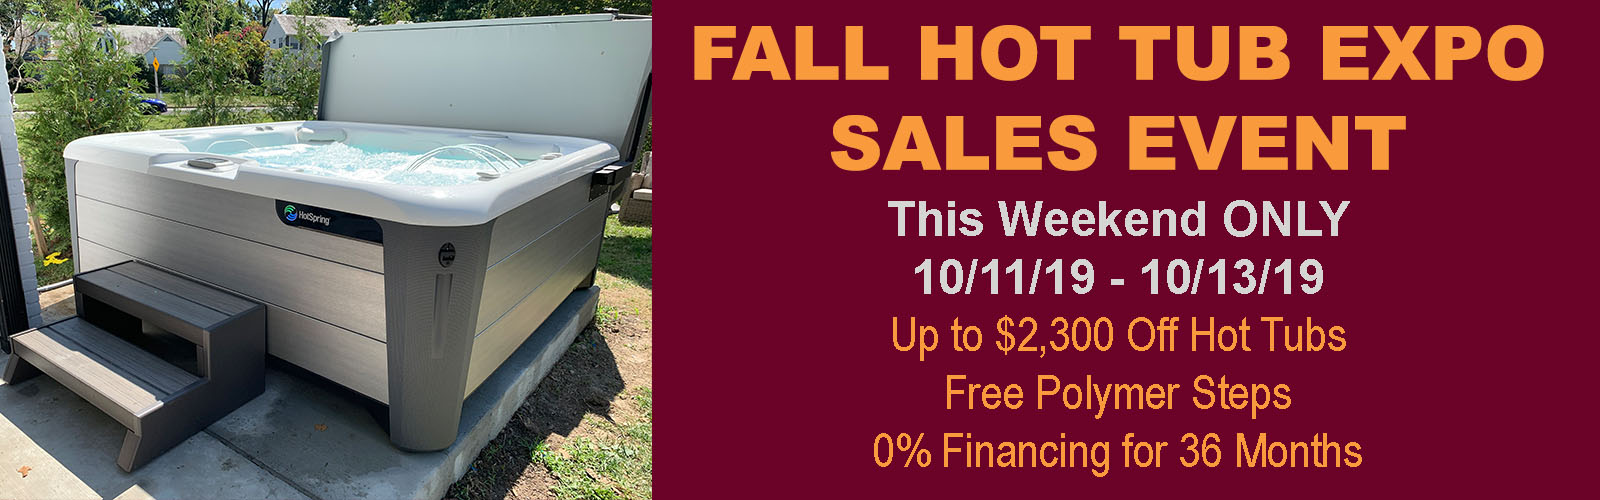 Fall Hot Tub Expo Sales Event